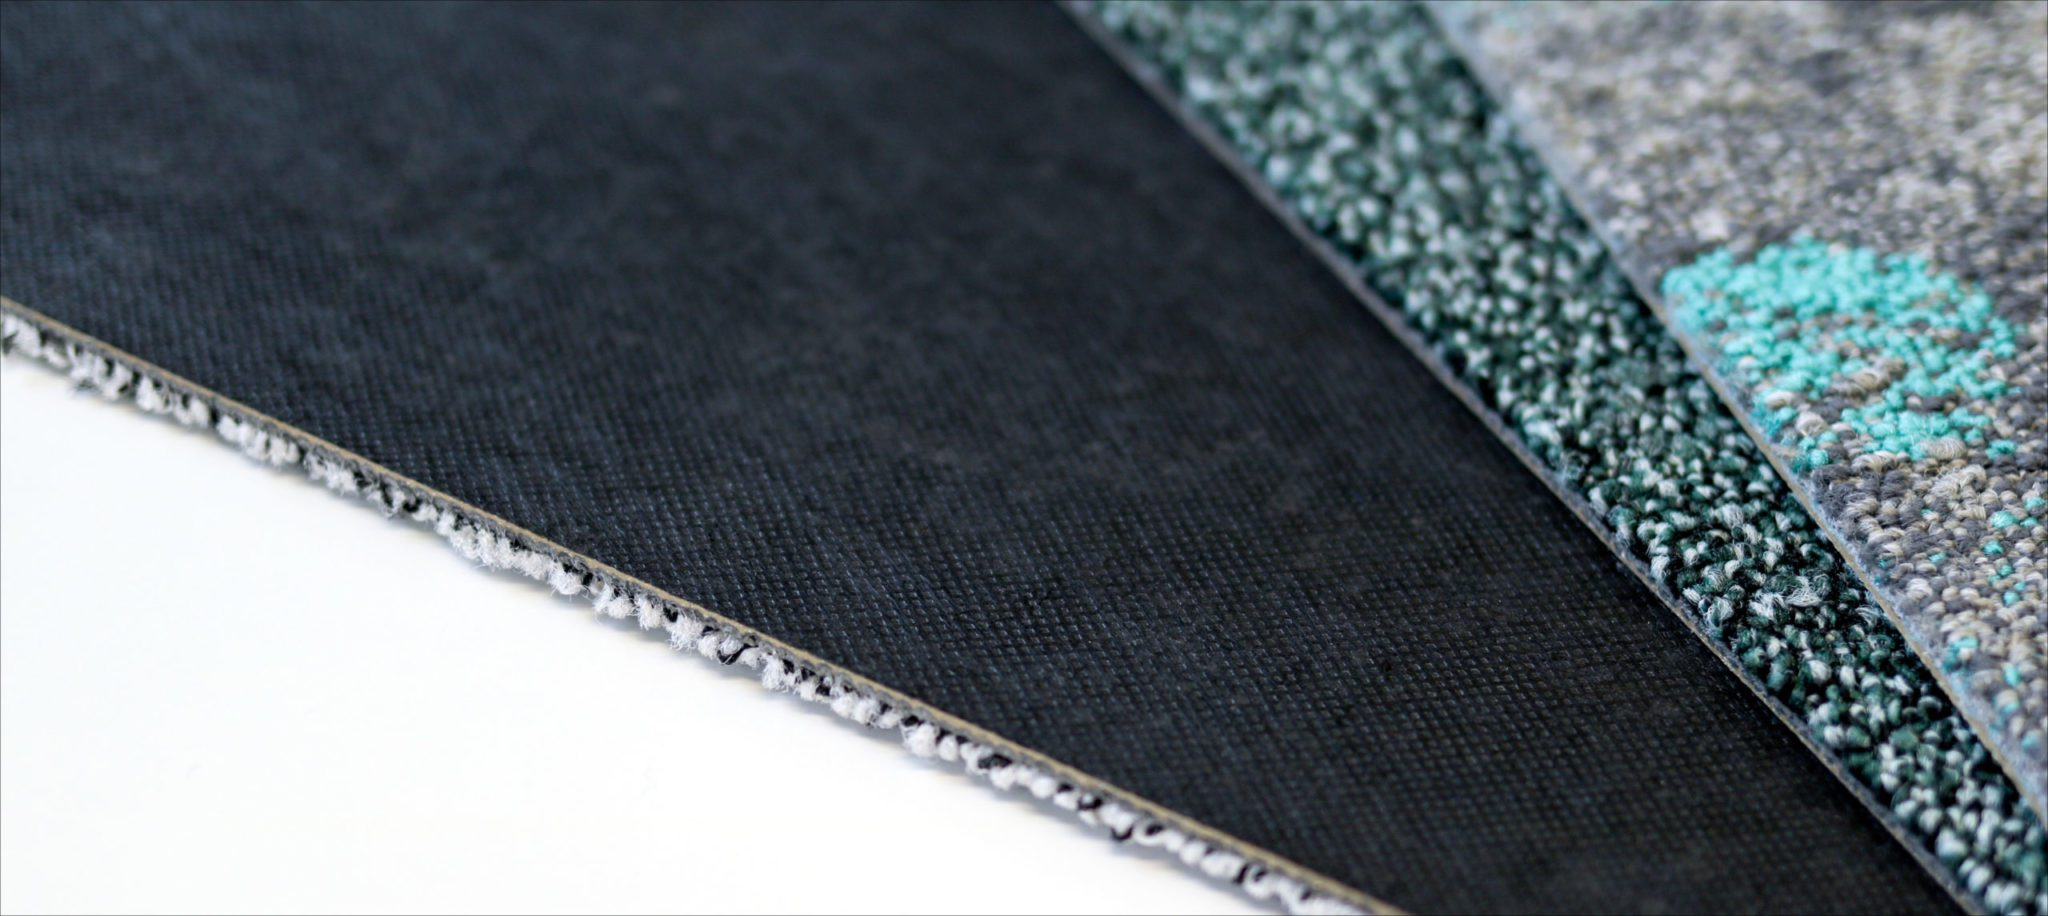 NEW SUSTAINABILITY MILESTONE IN FLOORING ACHIEVED BY INTERFACE